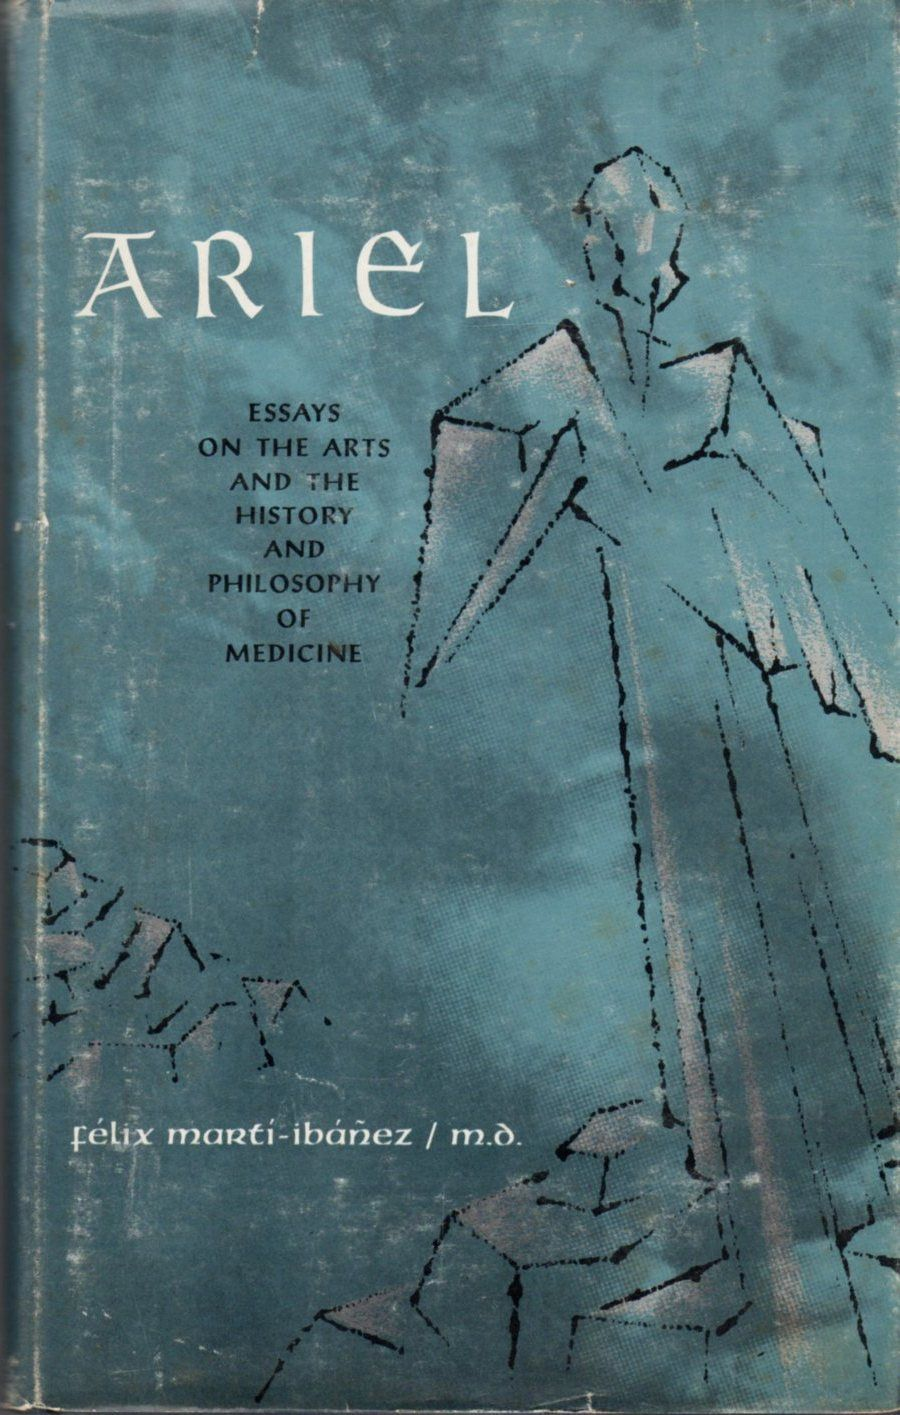 Ariel: Essays on the Arts and the History and Philosophy of Medicine by  Felix Marti-Ibanex - Hardcover - 1962 - from Clausen Books, RMABA and